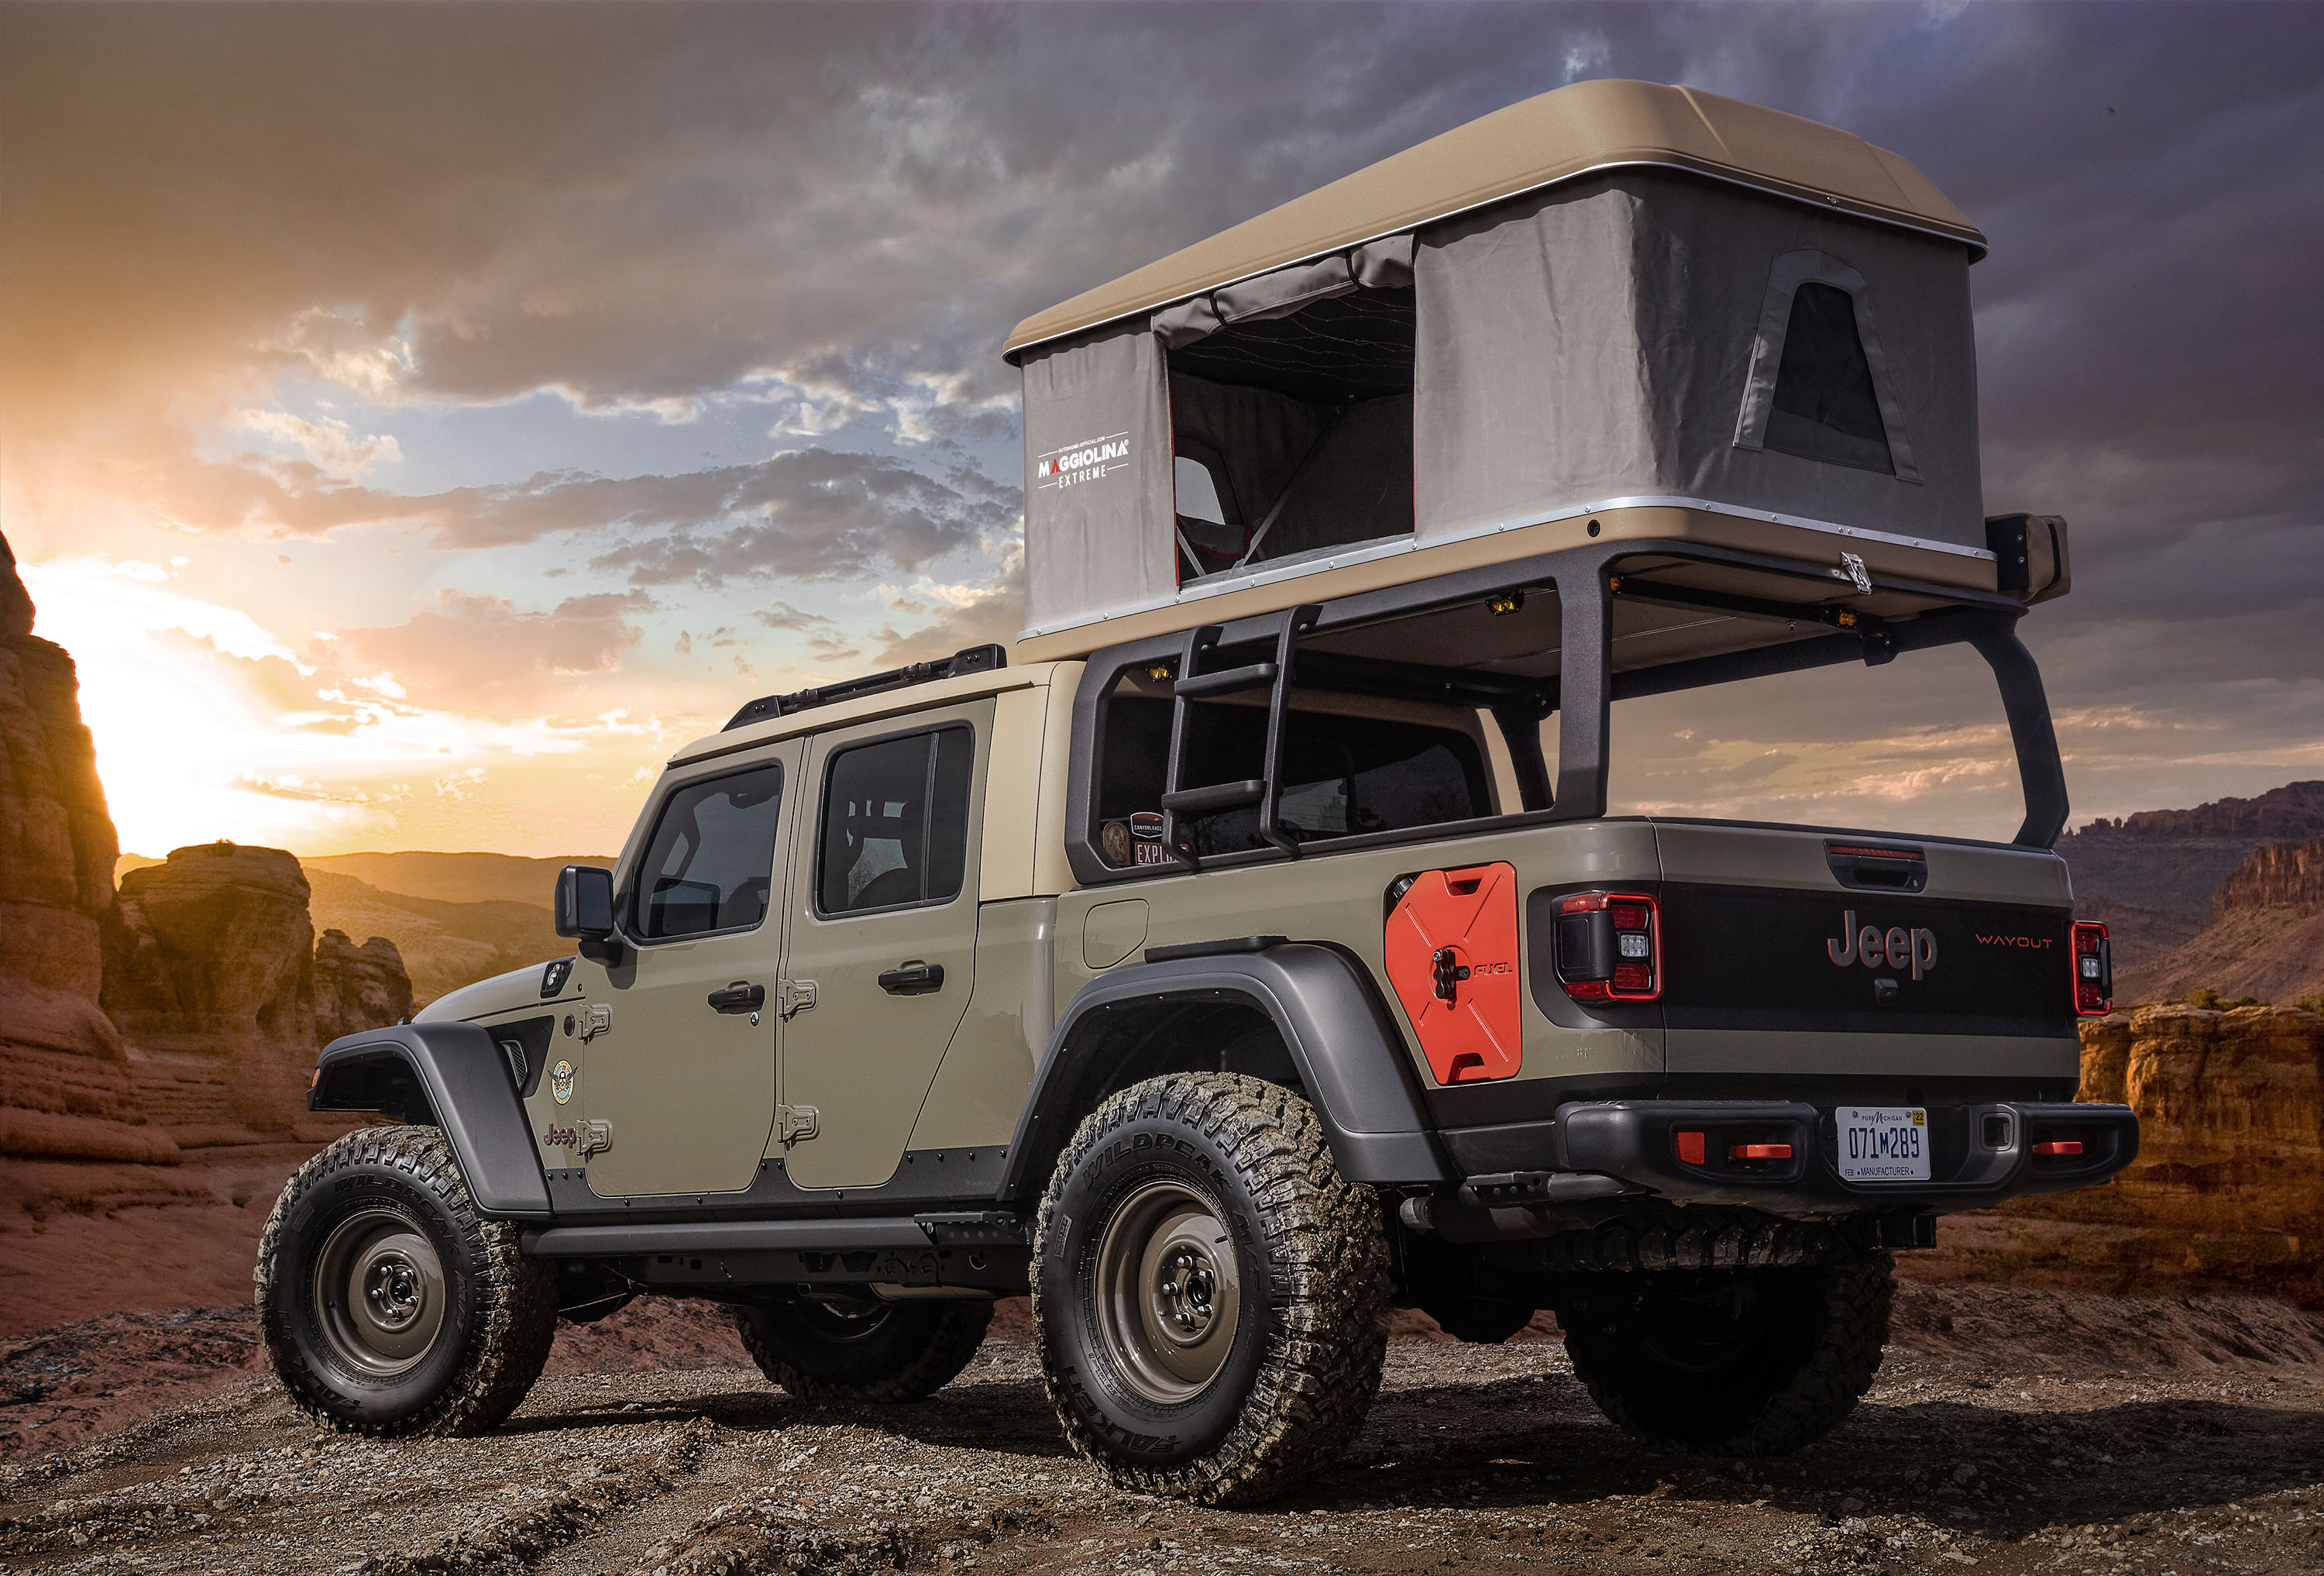 Jeep Just Released 6 Badass 'Easter Safari' Truck Concepts